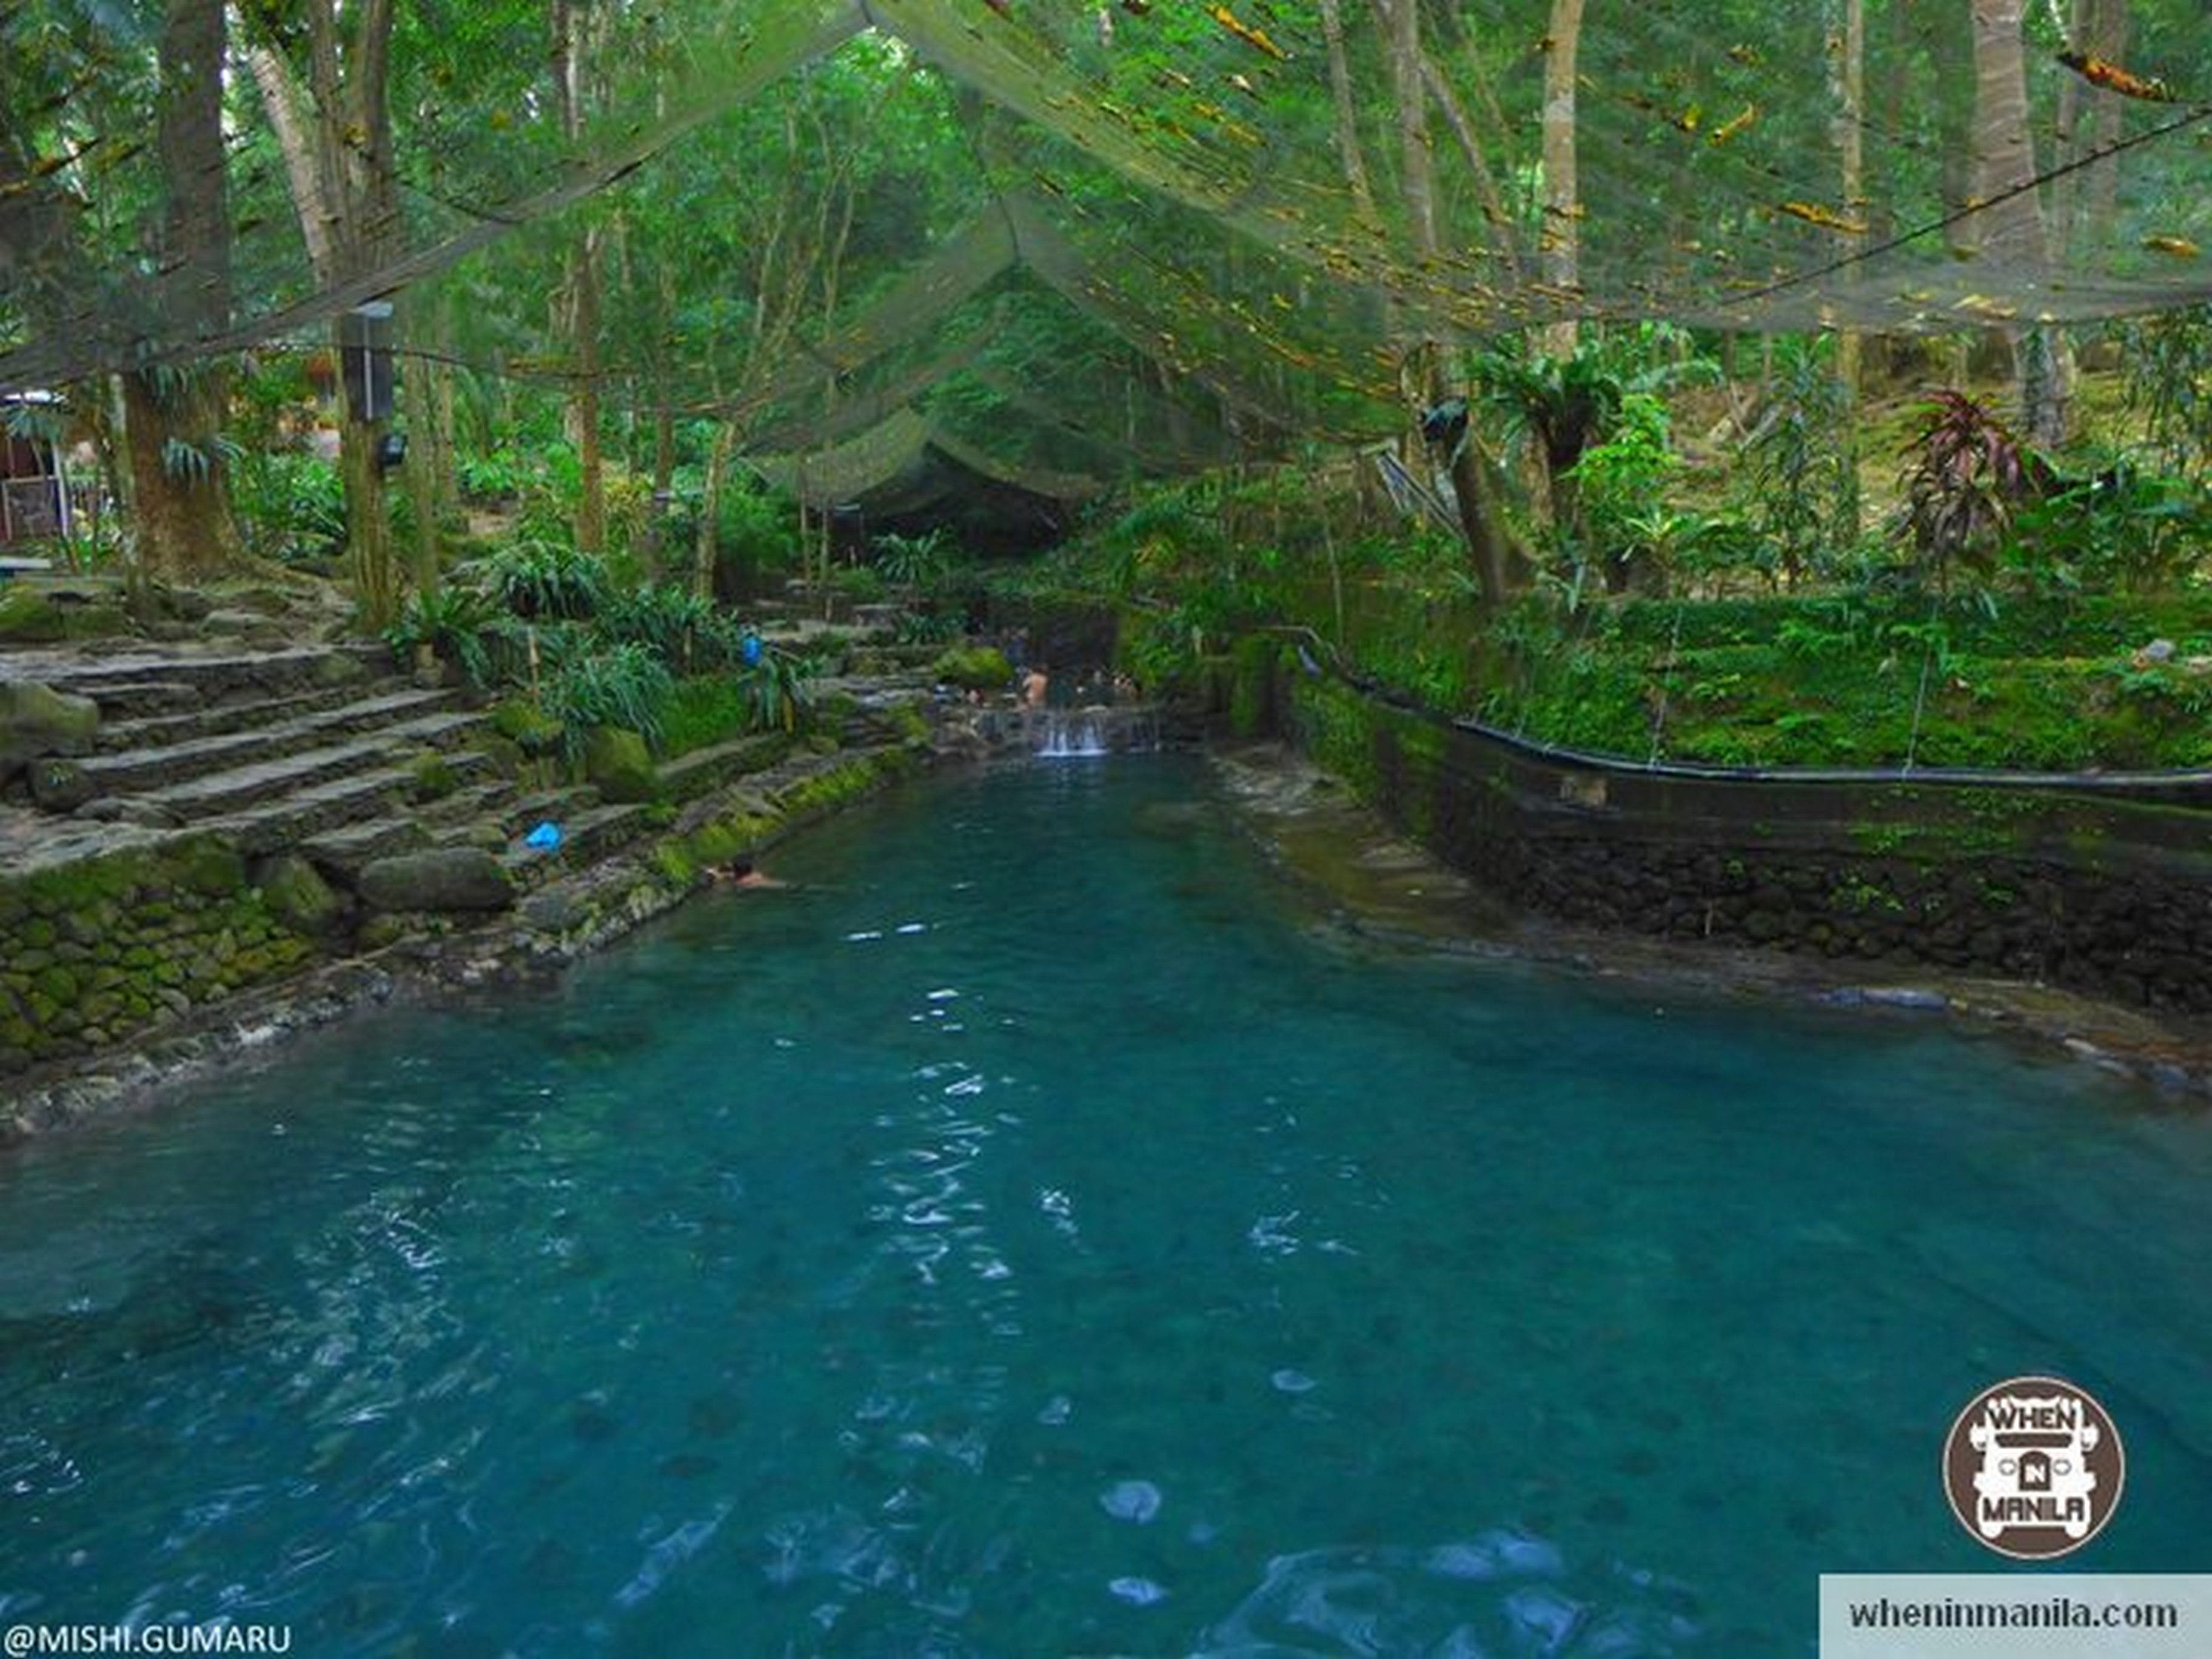 FINAL-CAMIGUIN-IS-YOUR-BEST-BET-FOR-YOUR-FIRST-SOLO-ADVENTURE-6